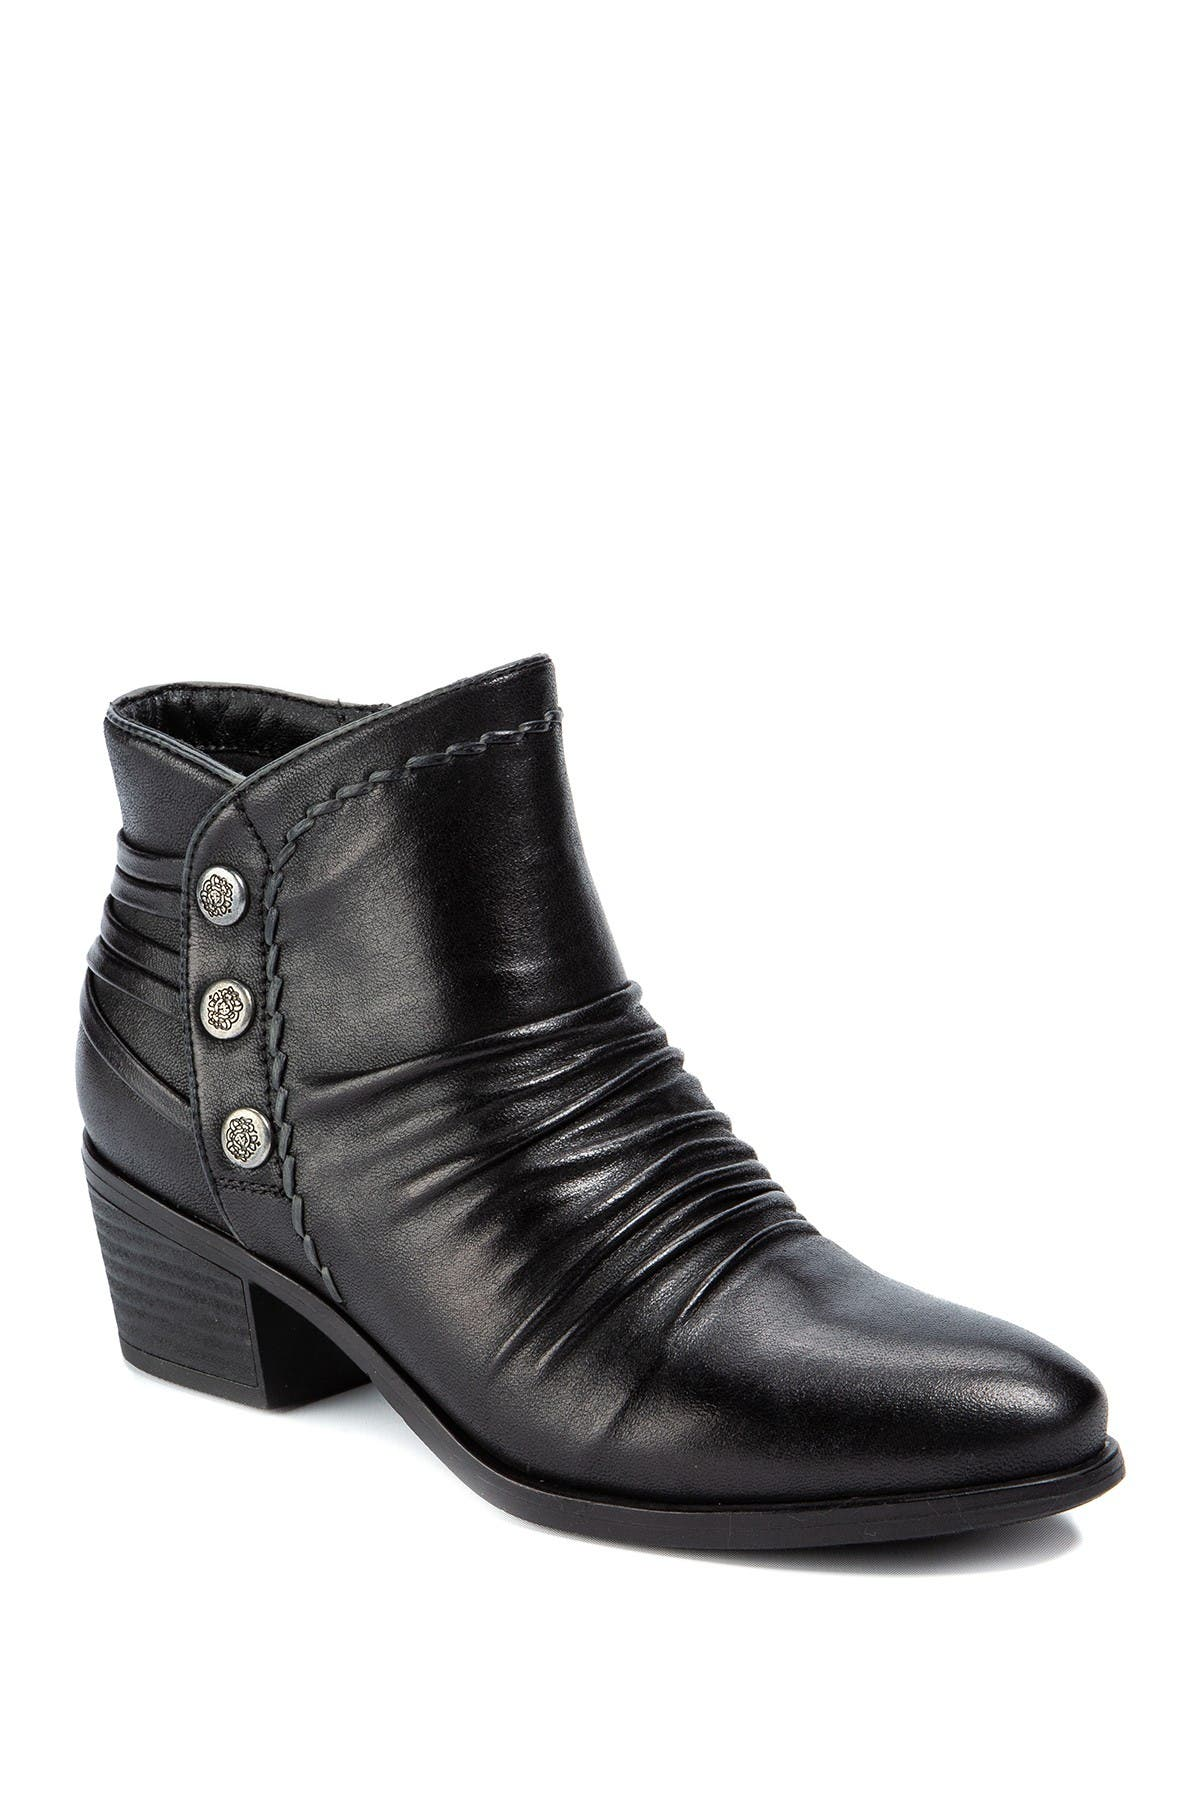 Image of BareTraps Bethany Ruched Ankle Bootie